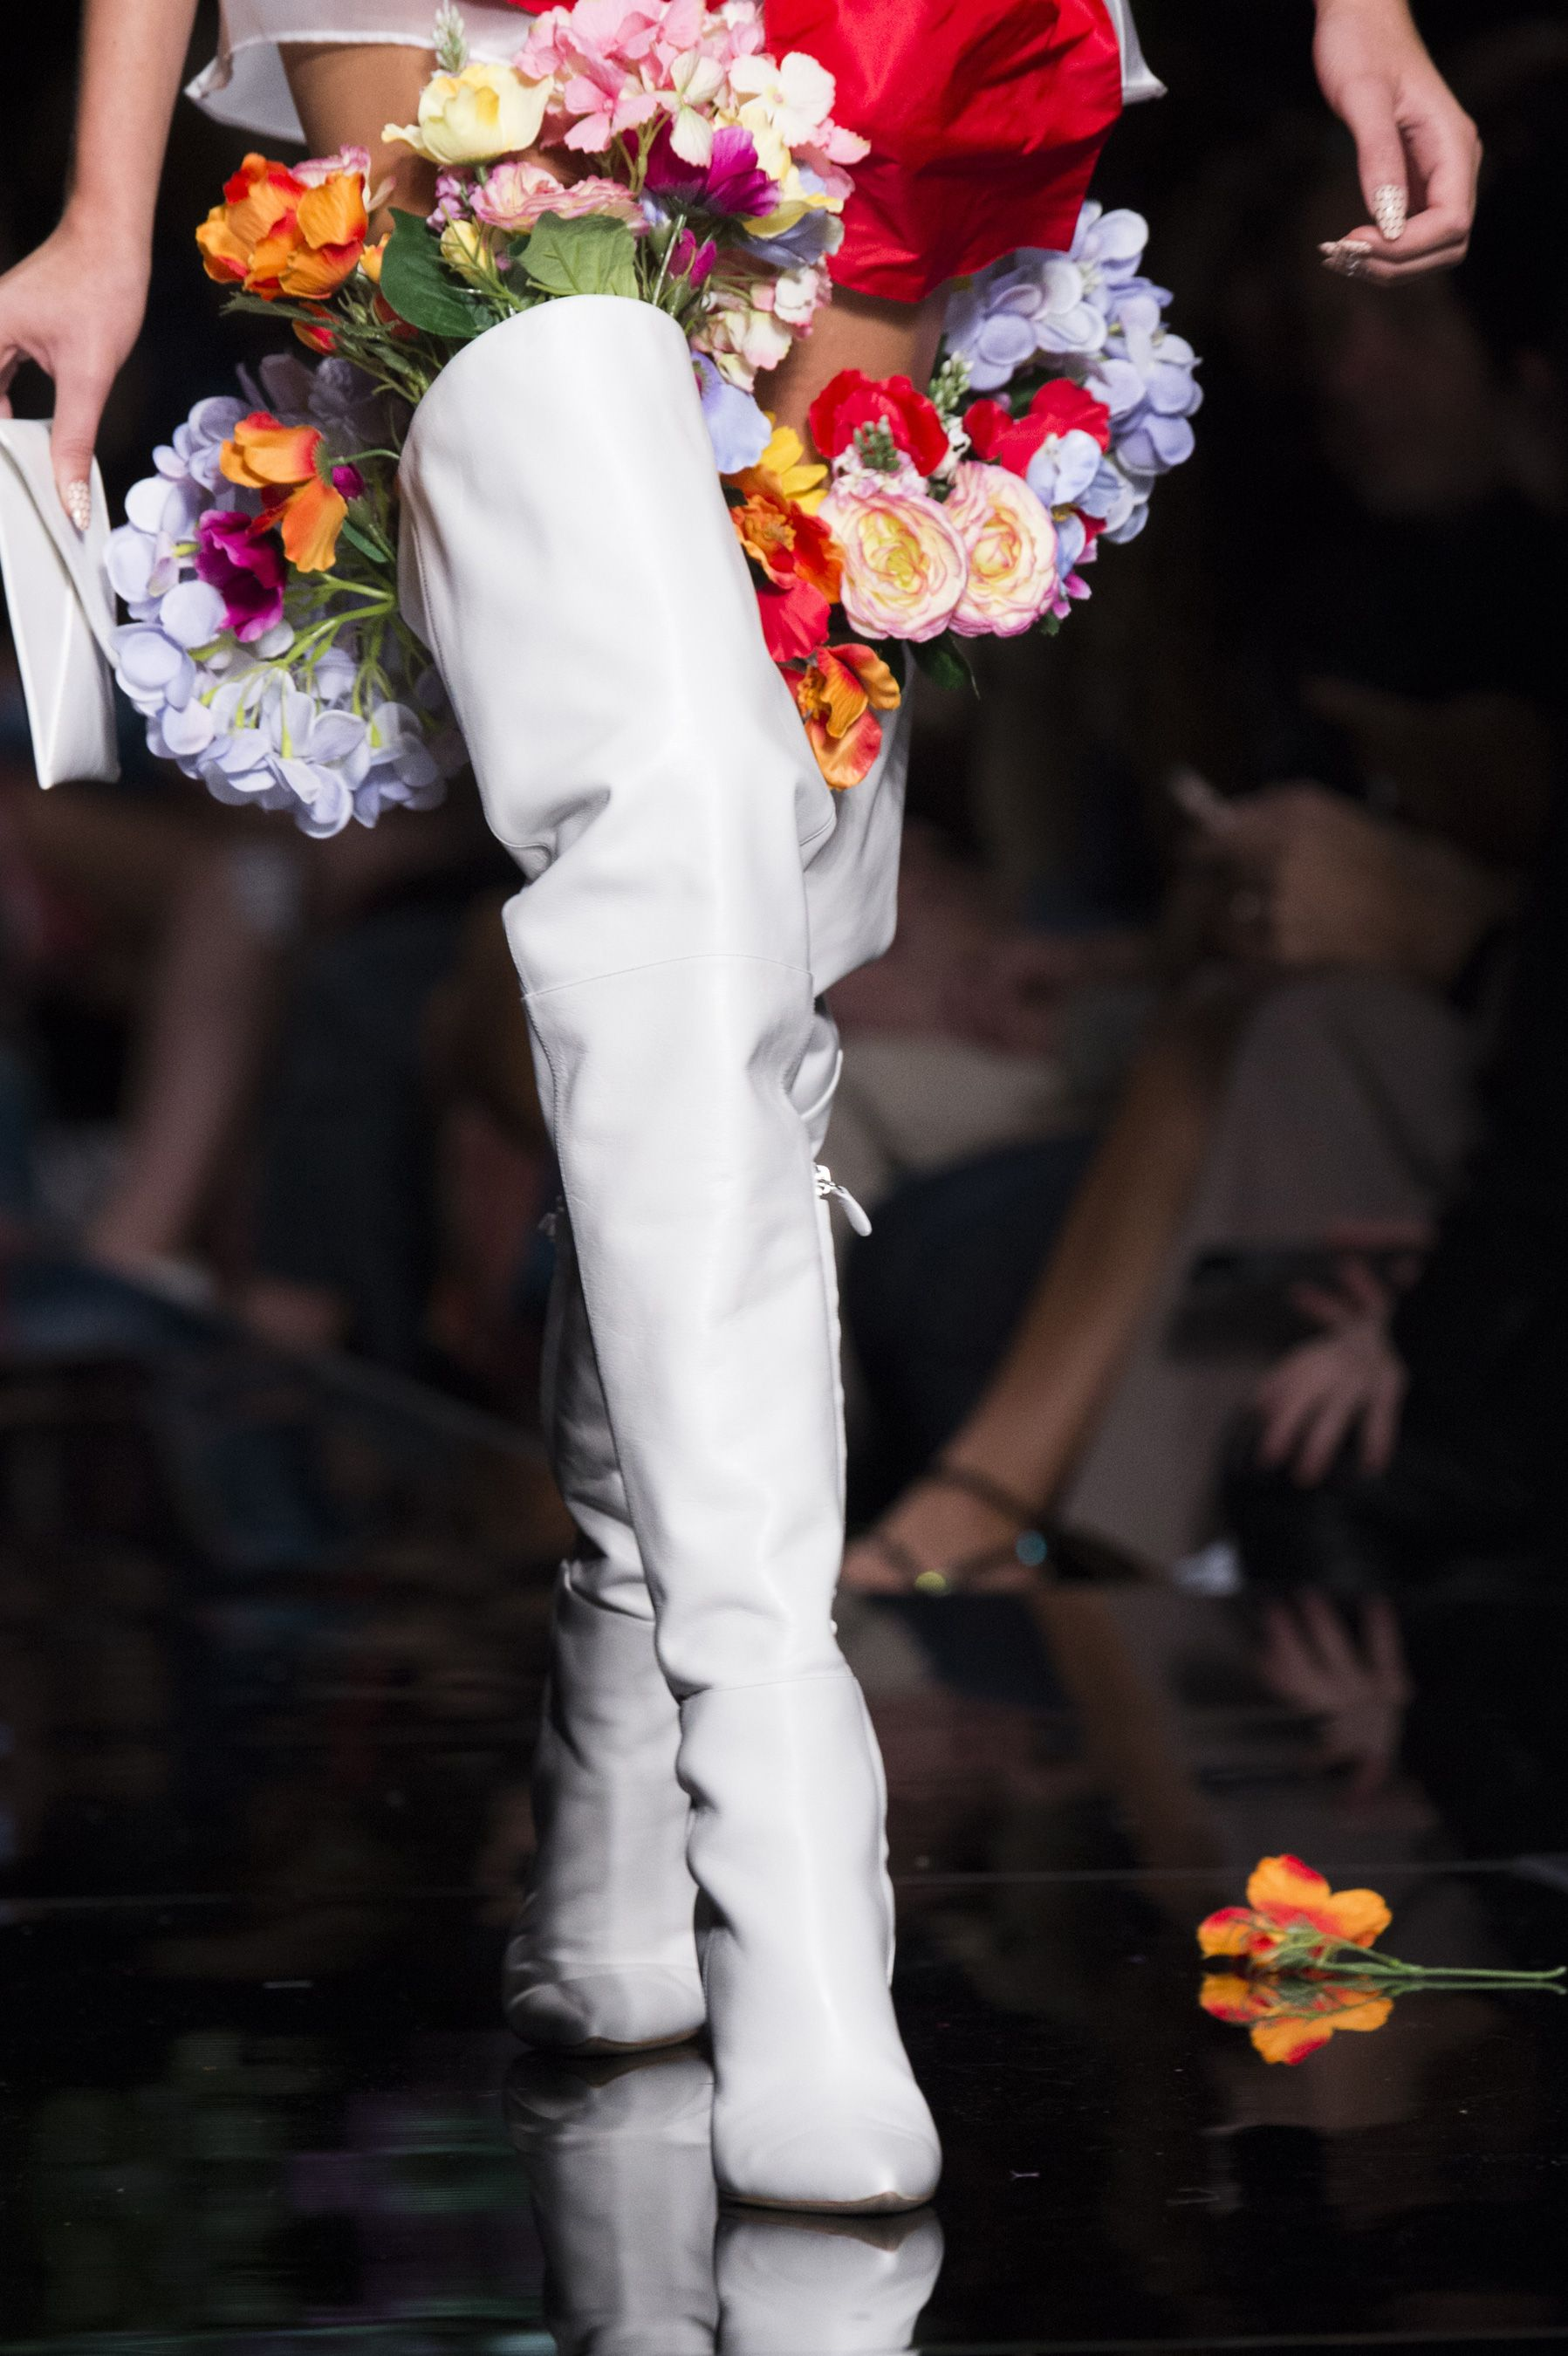 Moschino Spring 2018 Fashion Show Details, Runway, Womenswear Collections at TheImpression.com - Fashion news, street style, models, accessories